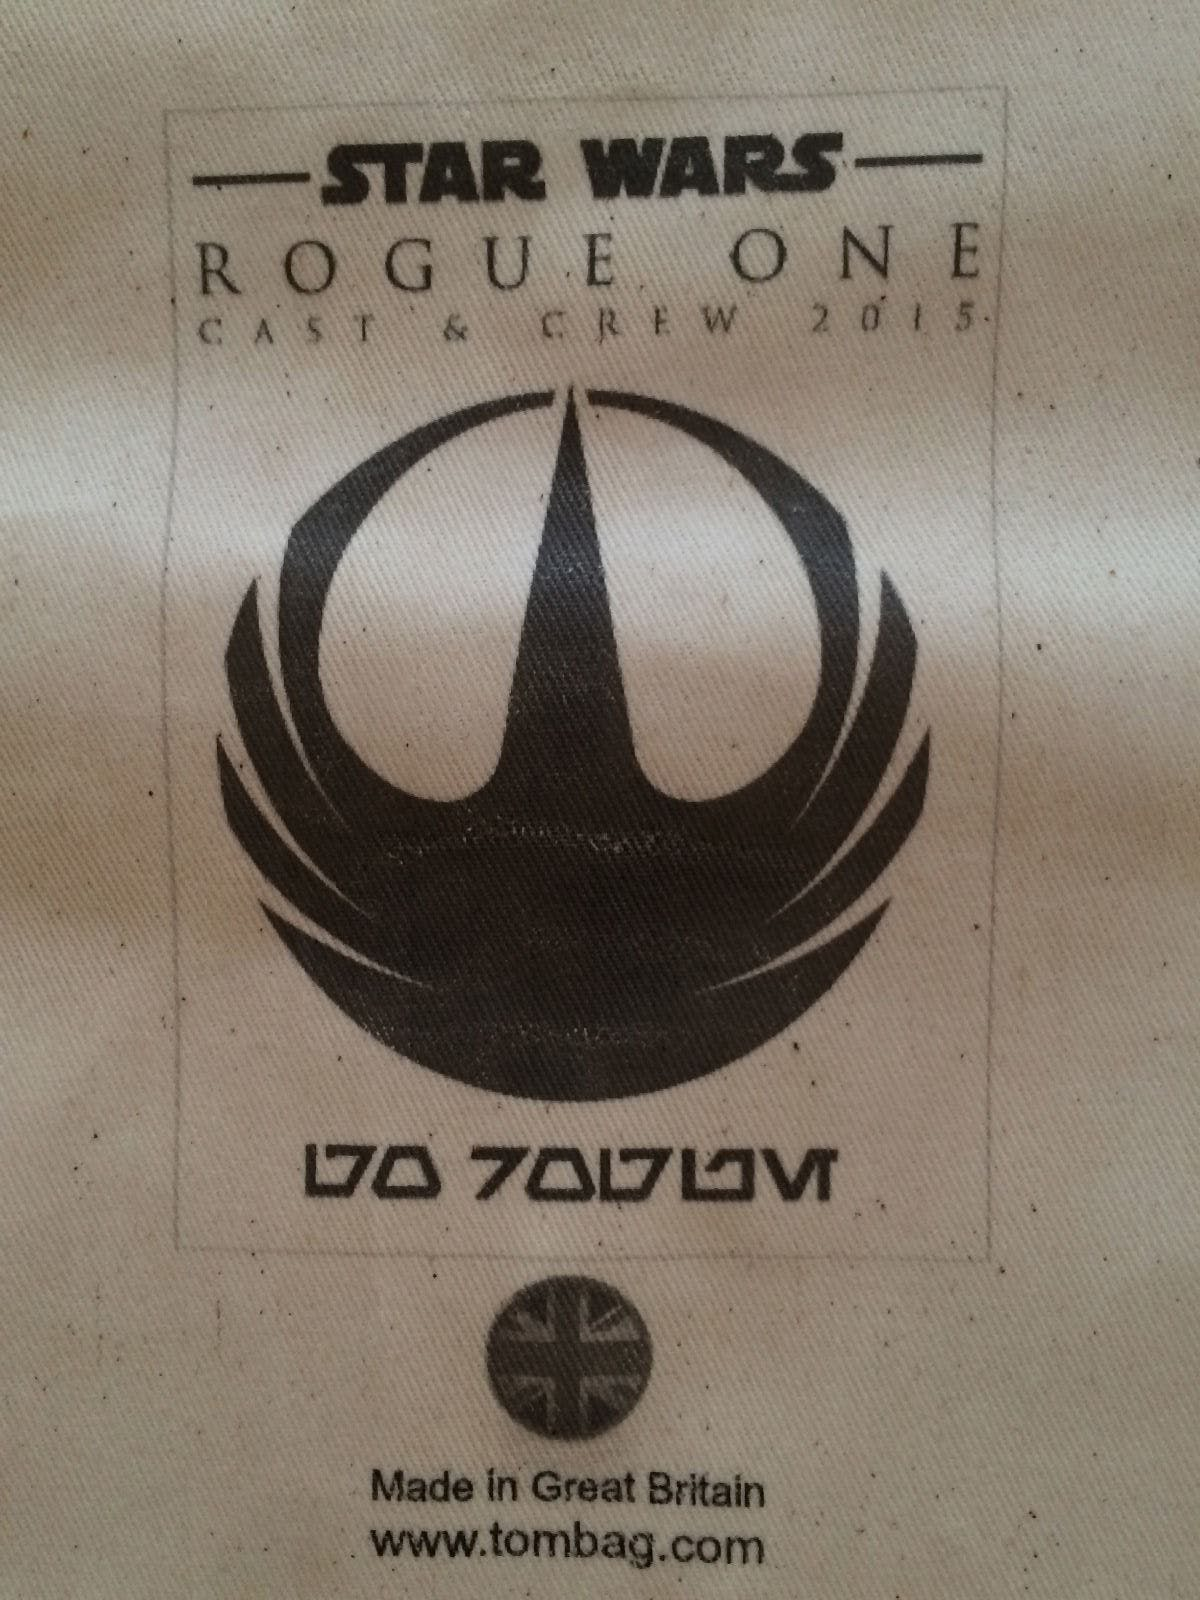 a close up of what looks like a new rebel alliance logo auto=format press&w=1200